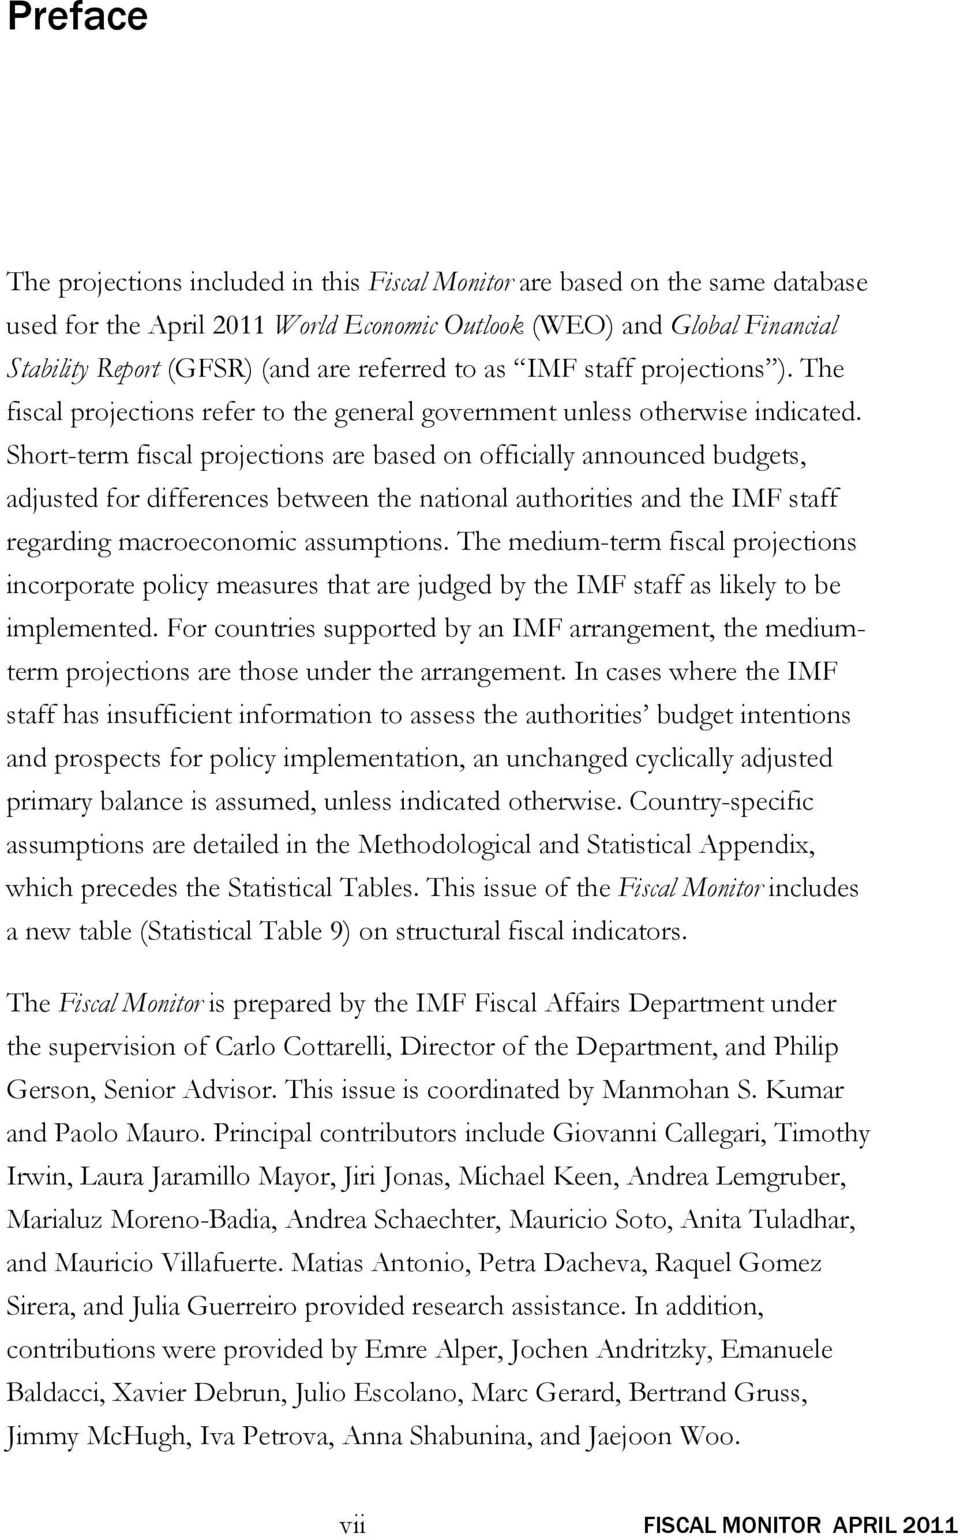 Short-term fiscal projections are based on officially announced budgets, adjusted for differences between the national authorities and the IMF staff regarding macroeconomic assumptions.